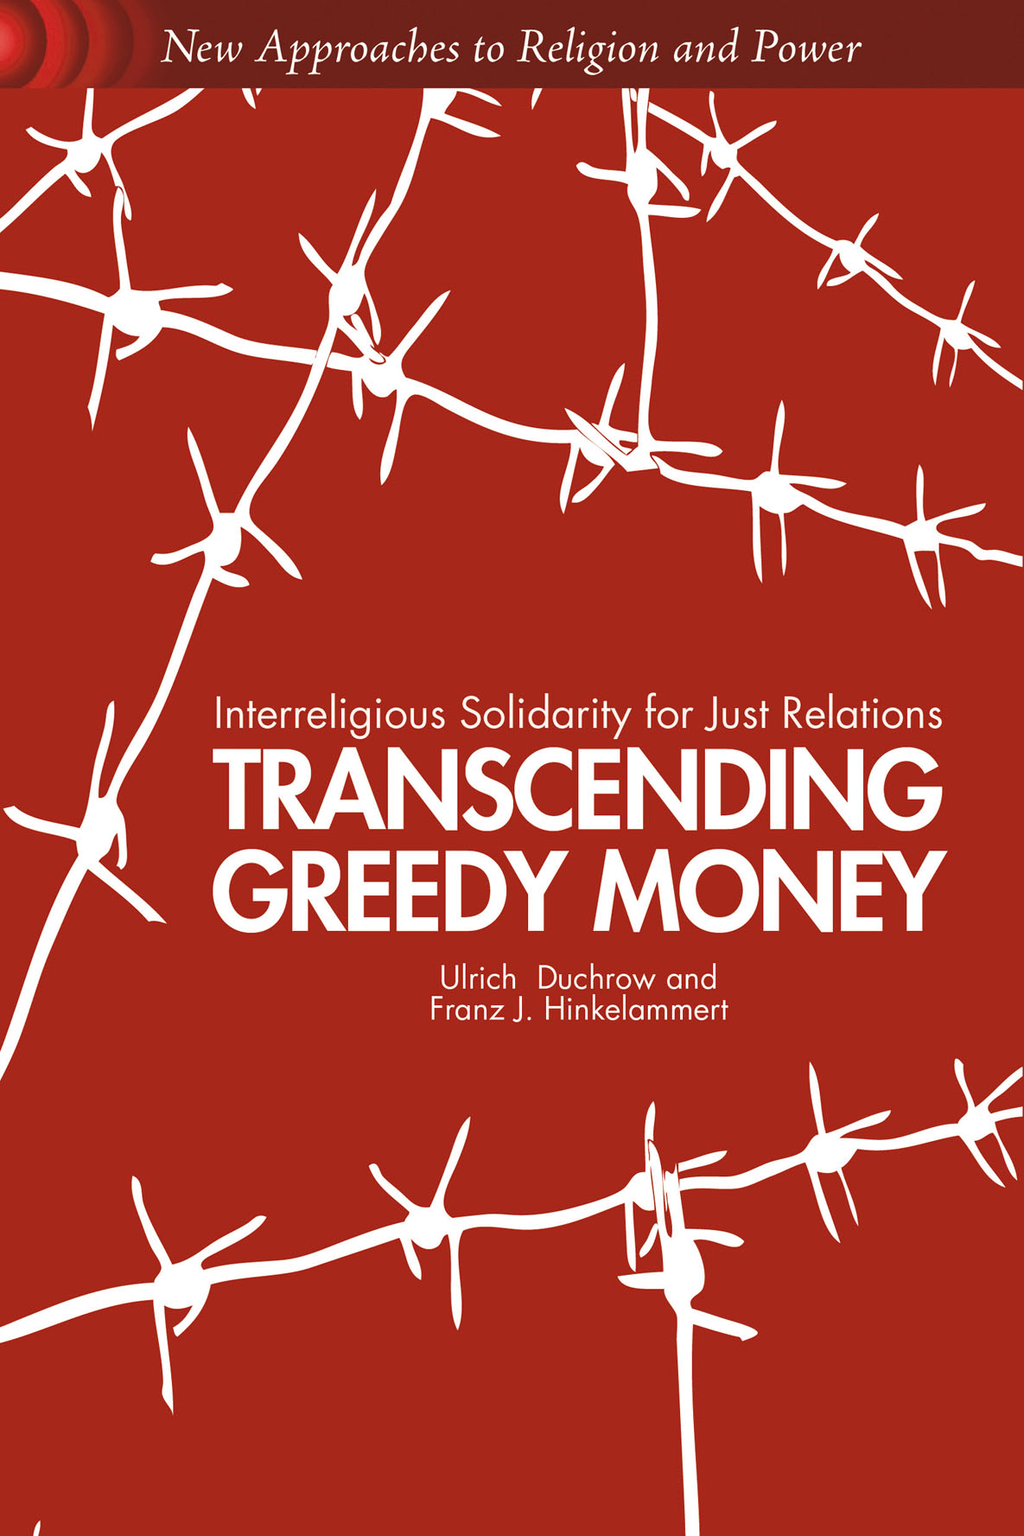 Transcending Greedy Money Interreligious Solidarity for Just Relations